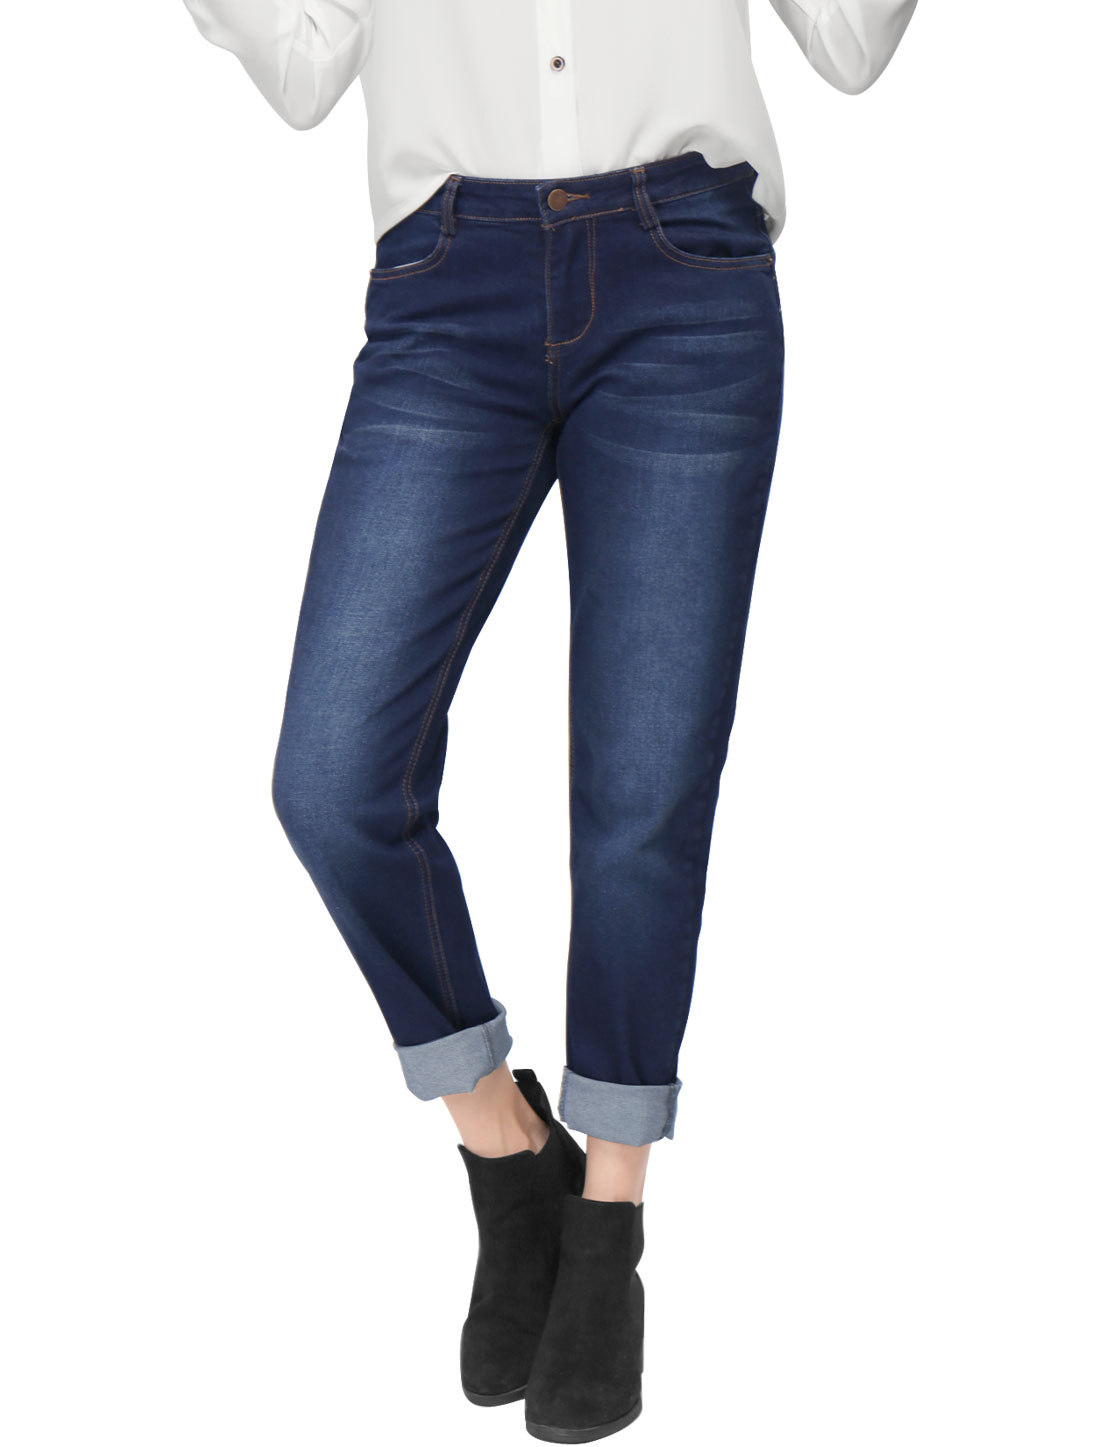 Women Zip Fly Button Closure Pockets Boyfriend Jeans Blue XL